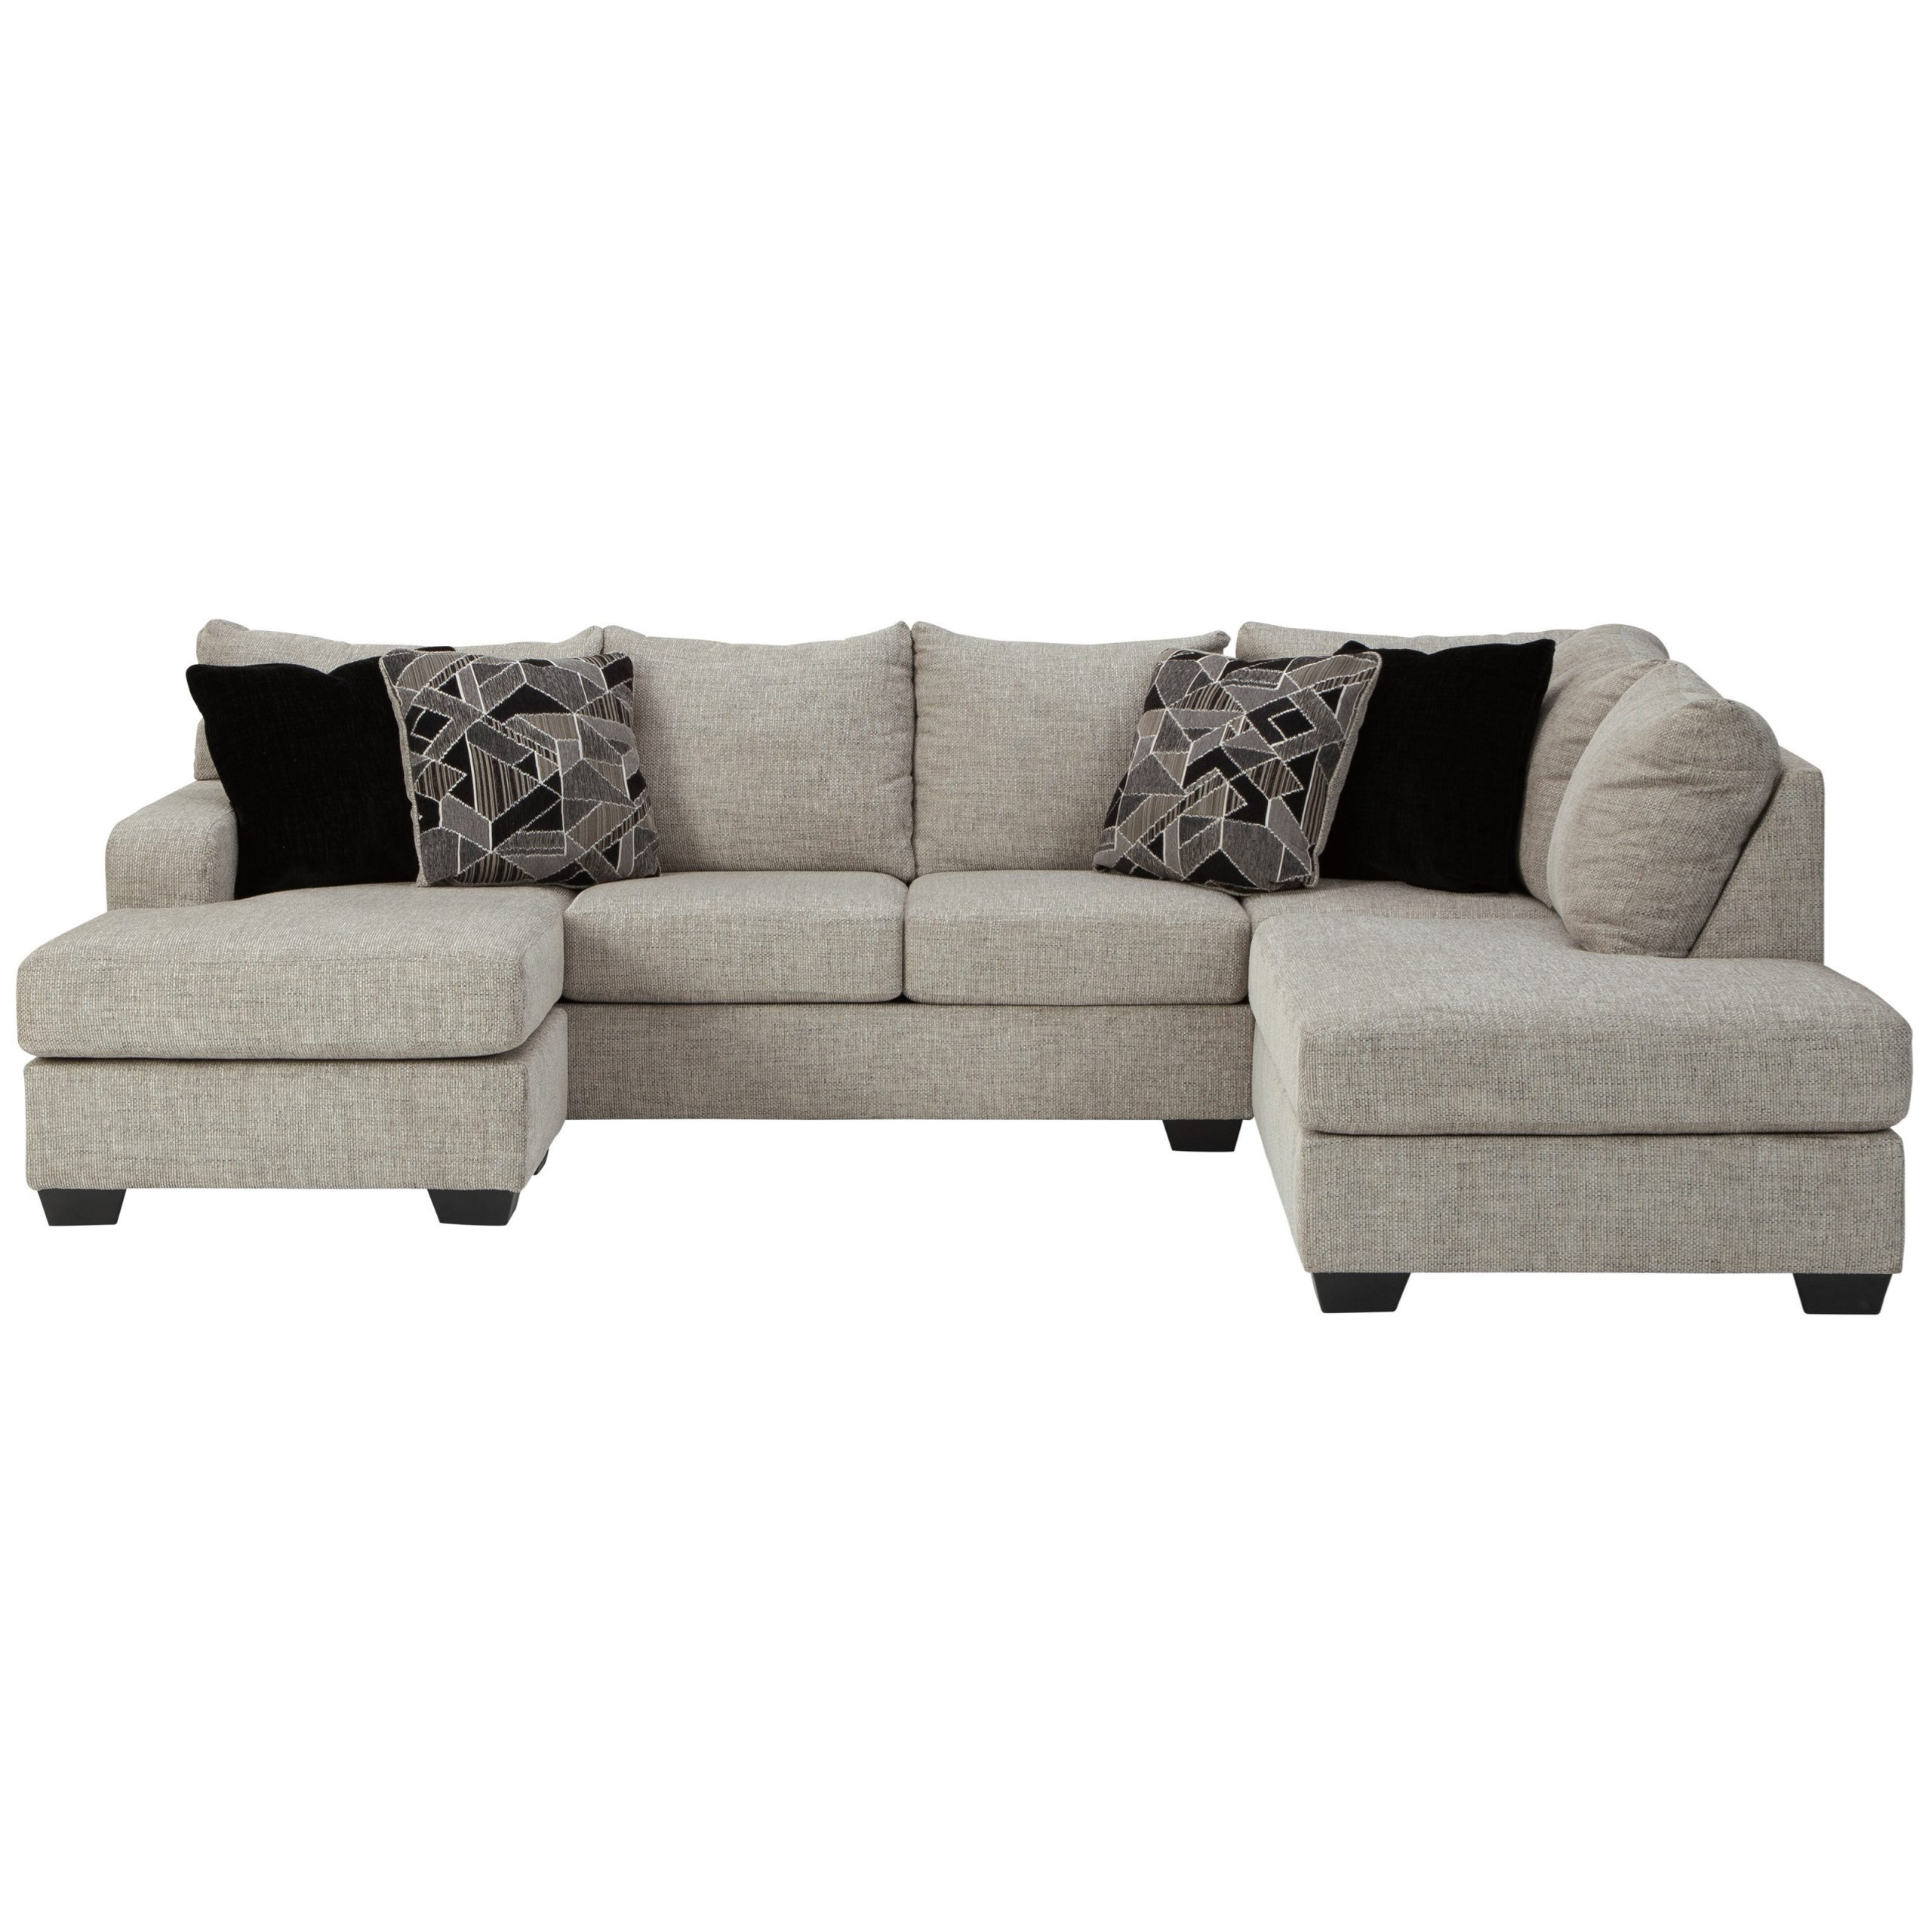 Benchcraft Furniture Seating Options